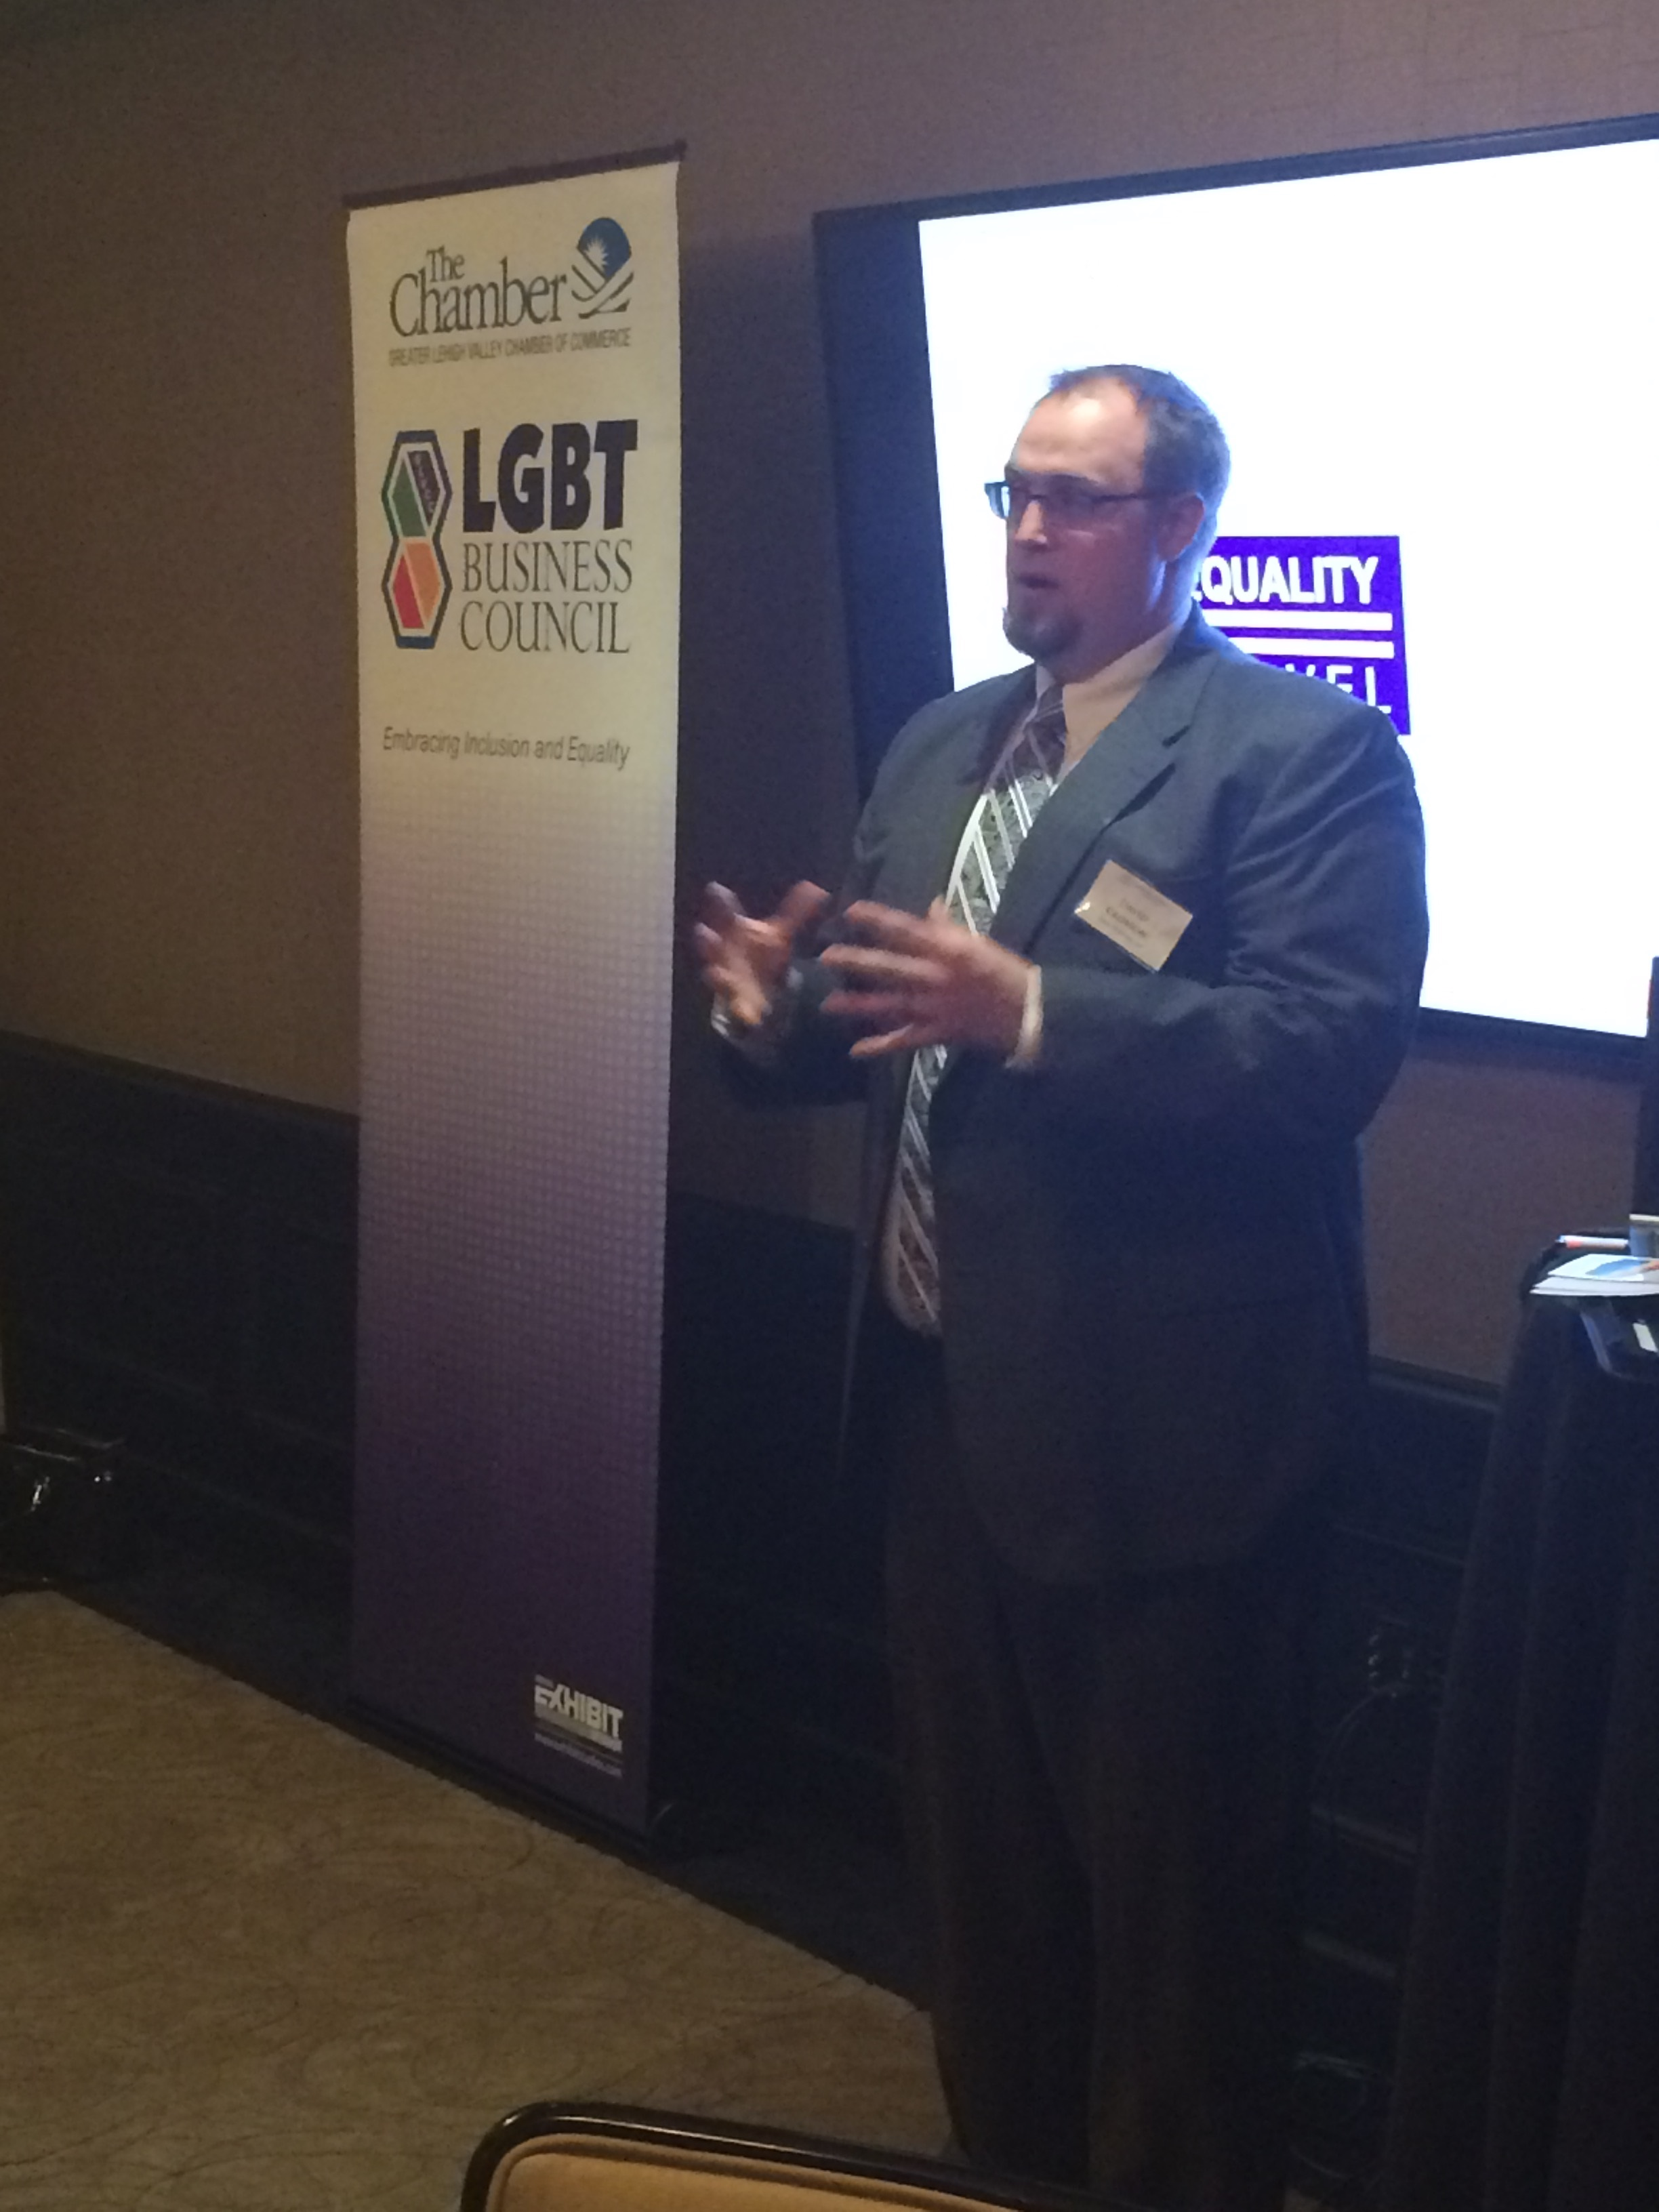 Gross McGinley Proudly Supports Chamber's LGBT Business Council at Life Lessons Event